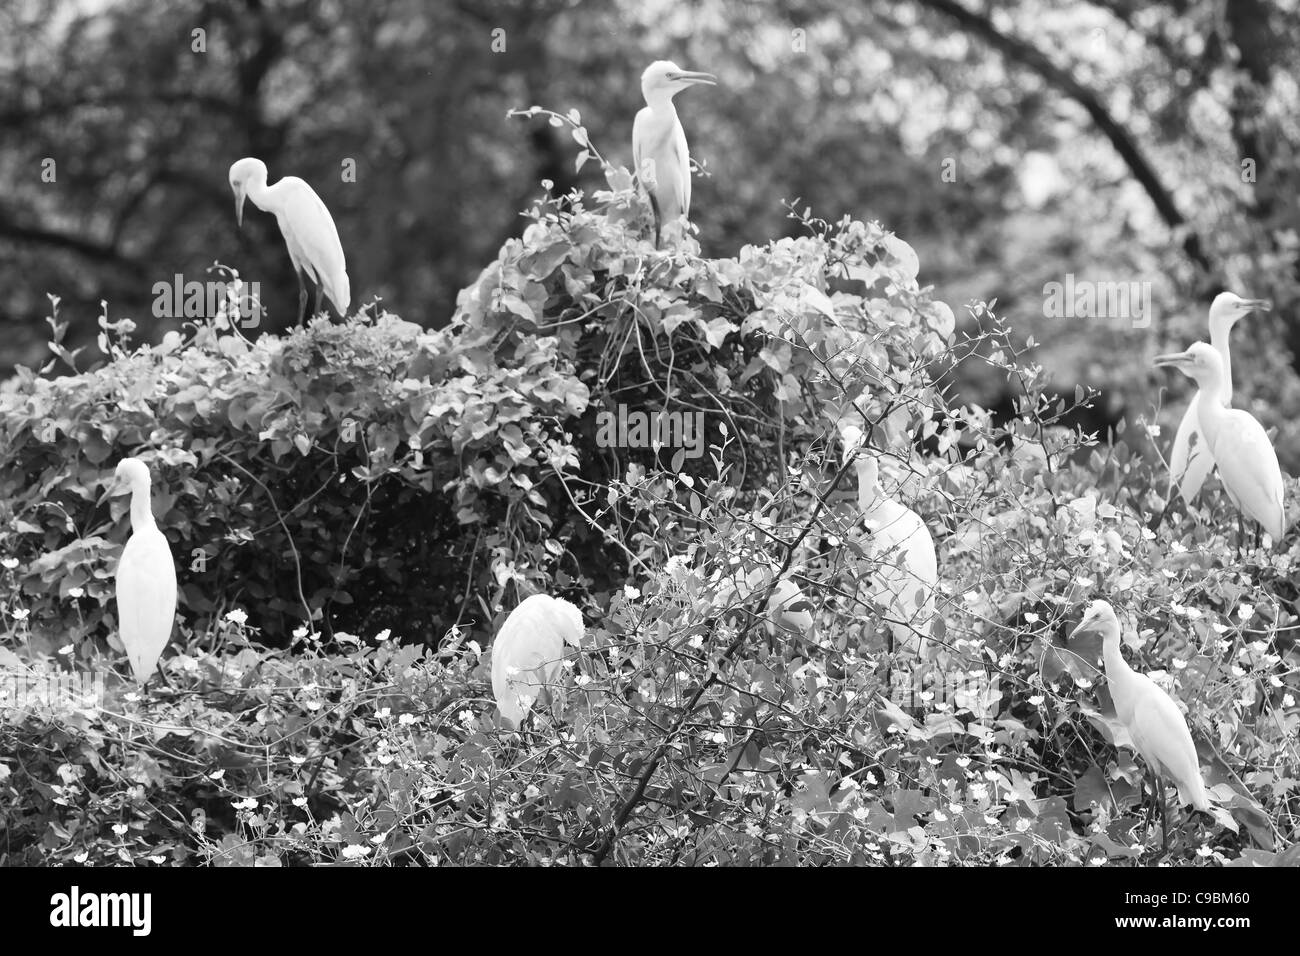 Birds Nature Egrets Wetland Bird Sanctuary Wildlife - Stock Image